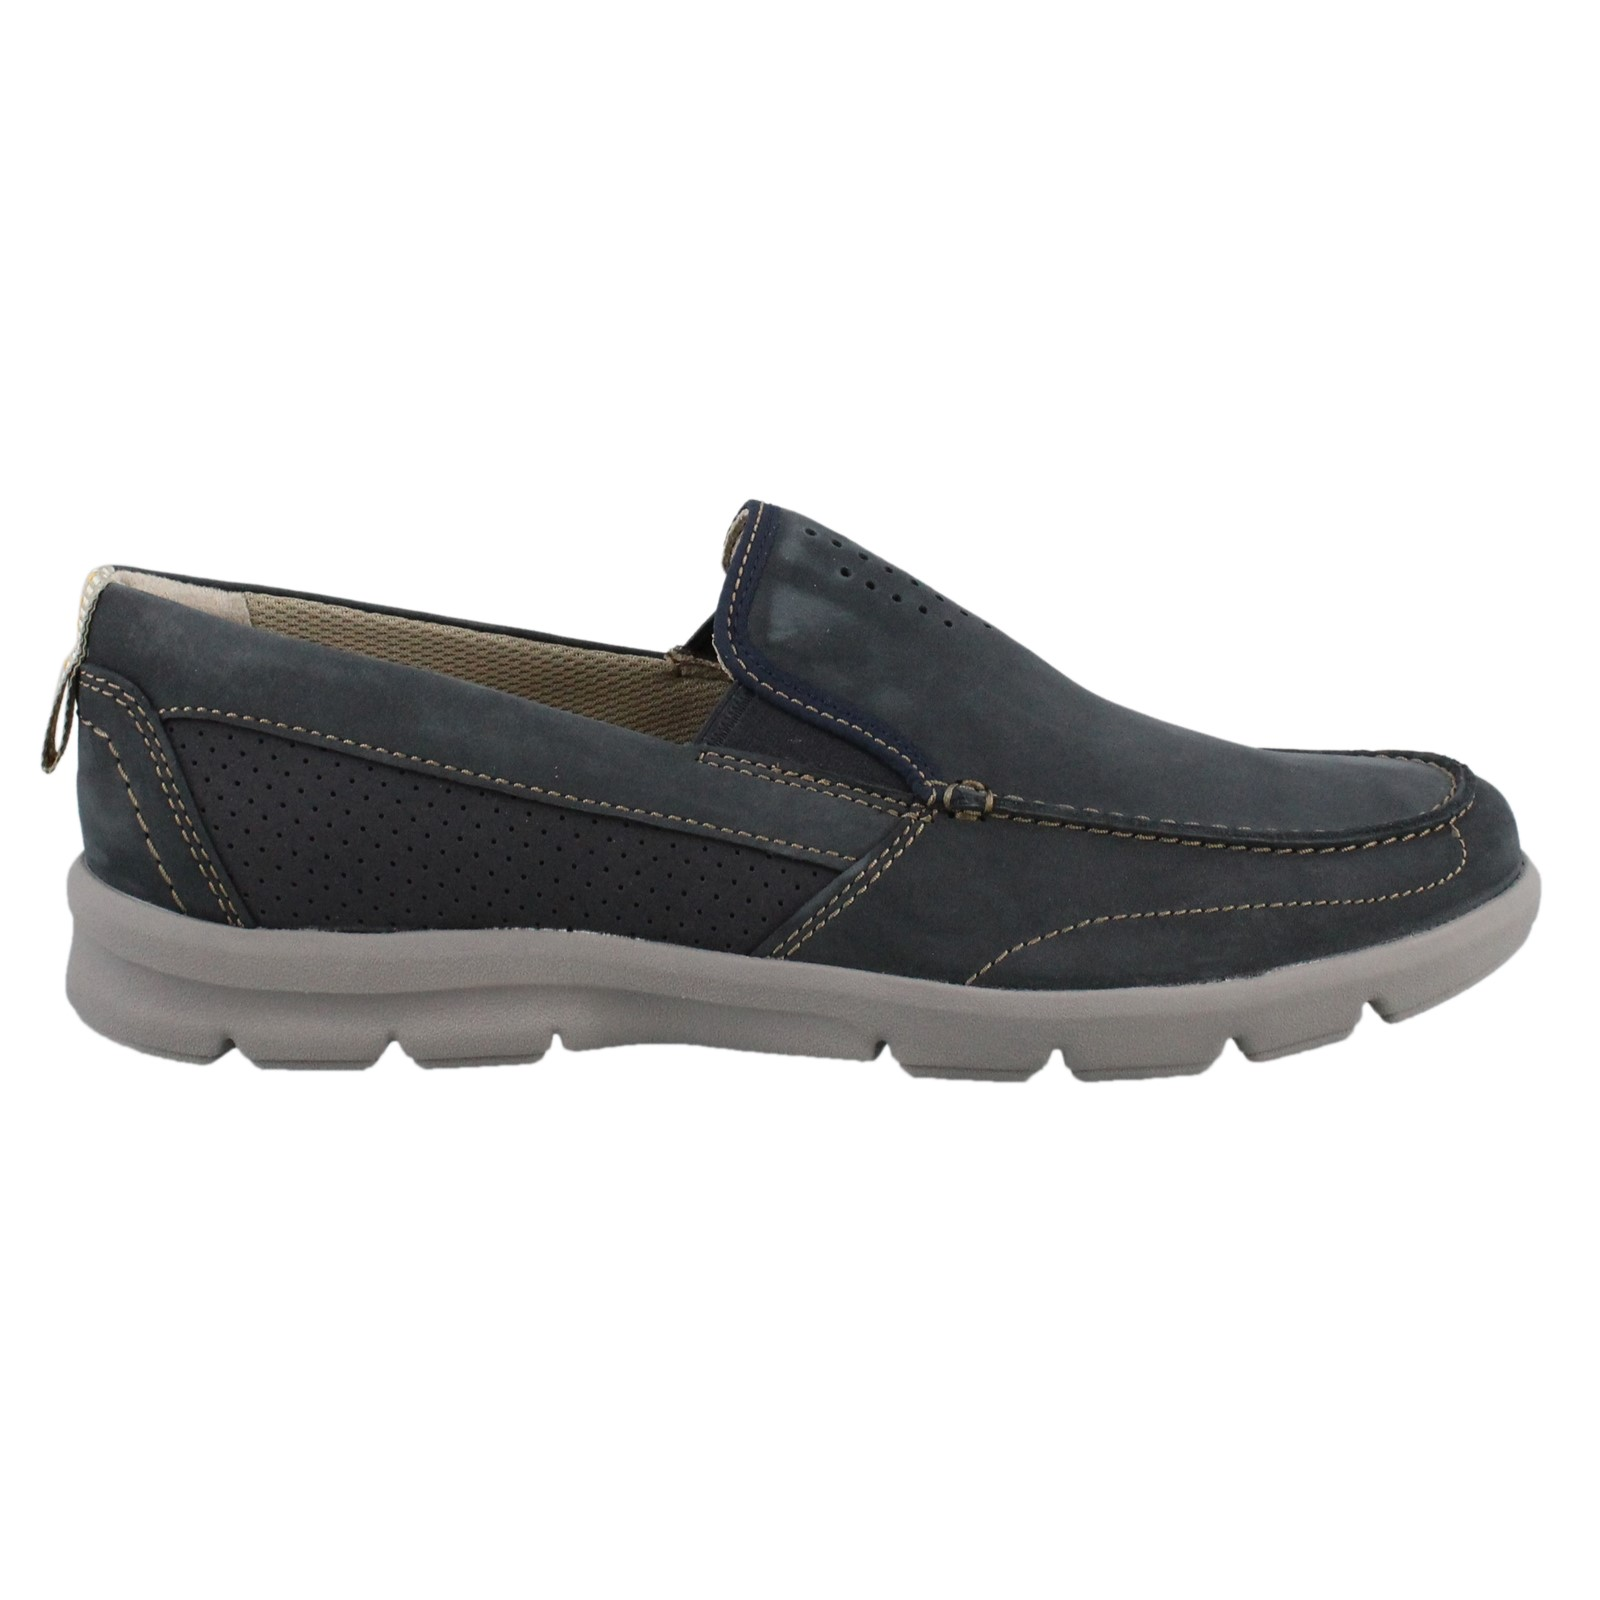 Men's Clarks, Jarwin Race Slip on Shoes